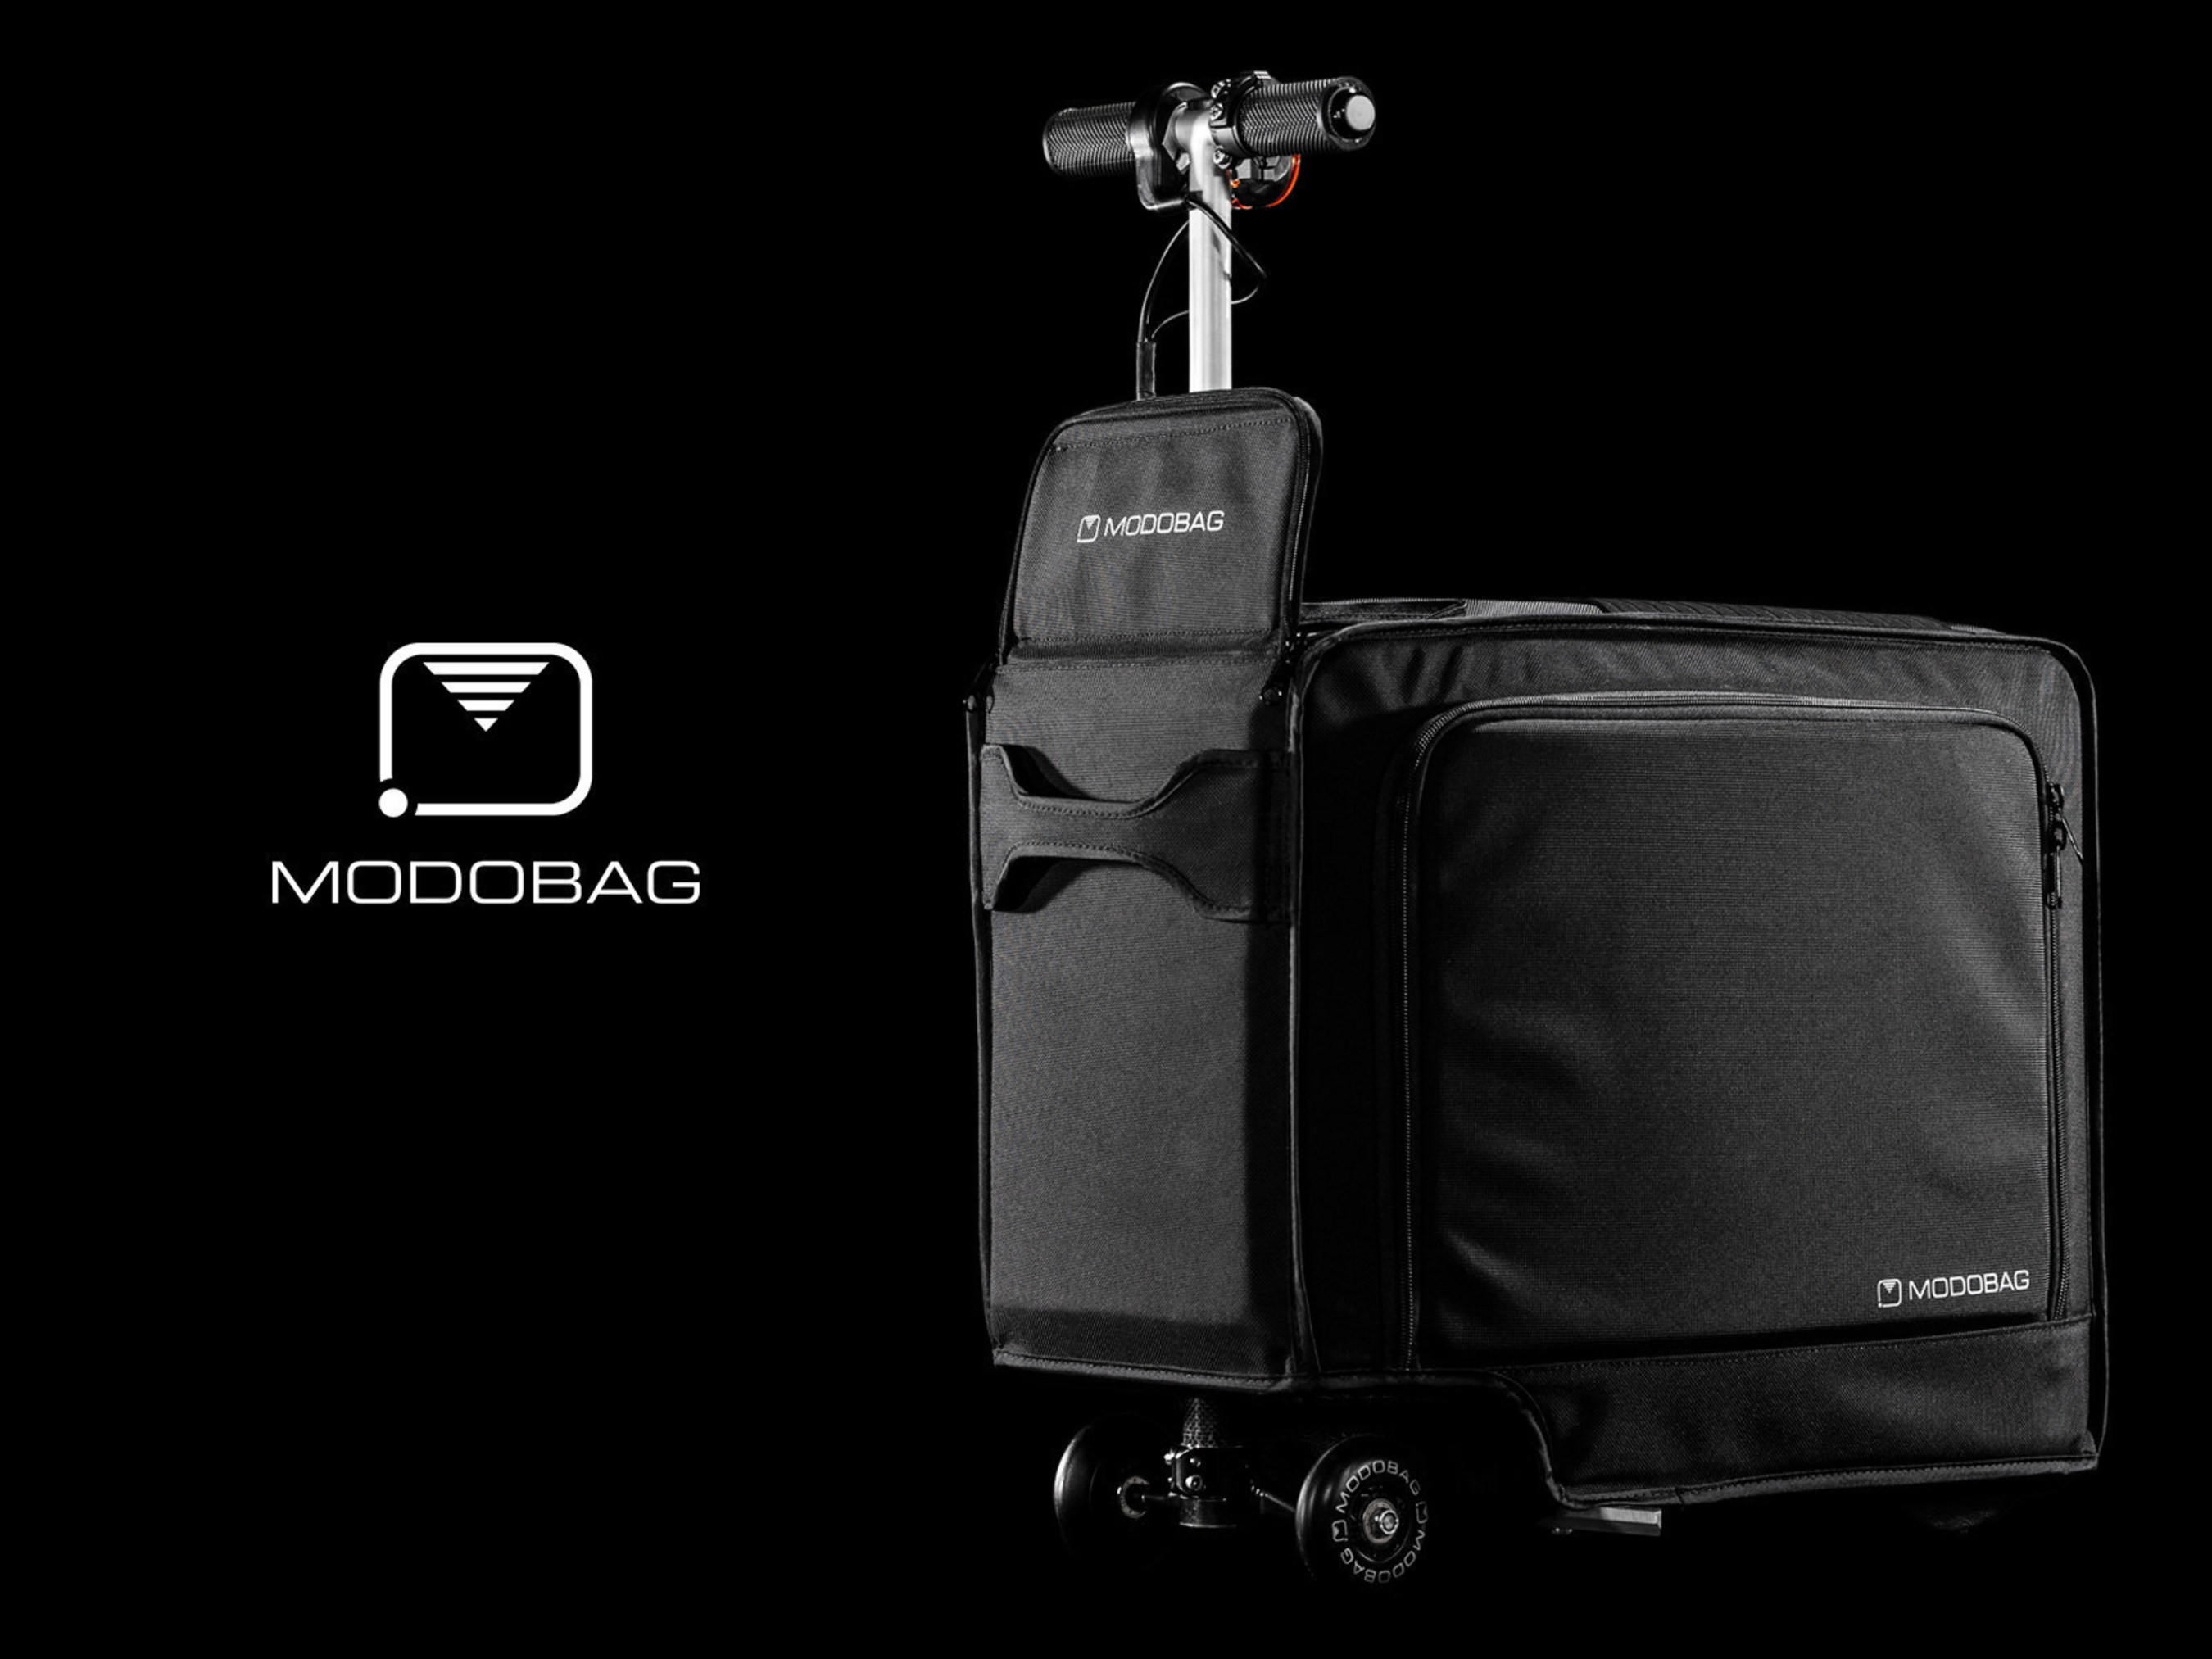 Modobag Is The World S First Motorized Smart And Connected Carry On Key Features Of Bag Include